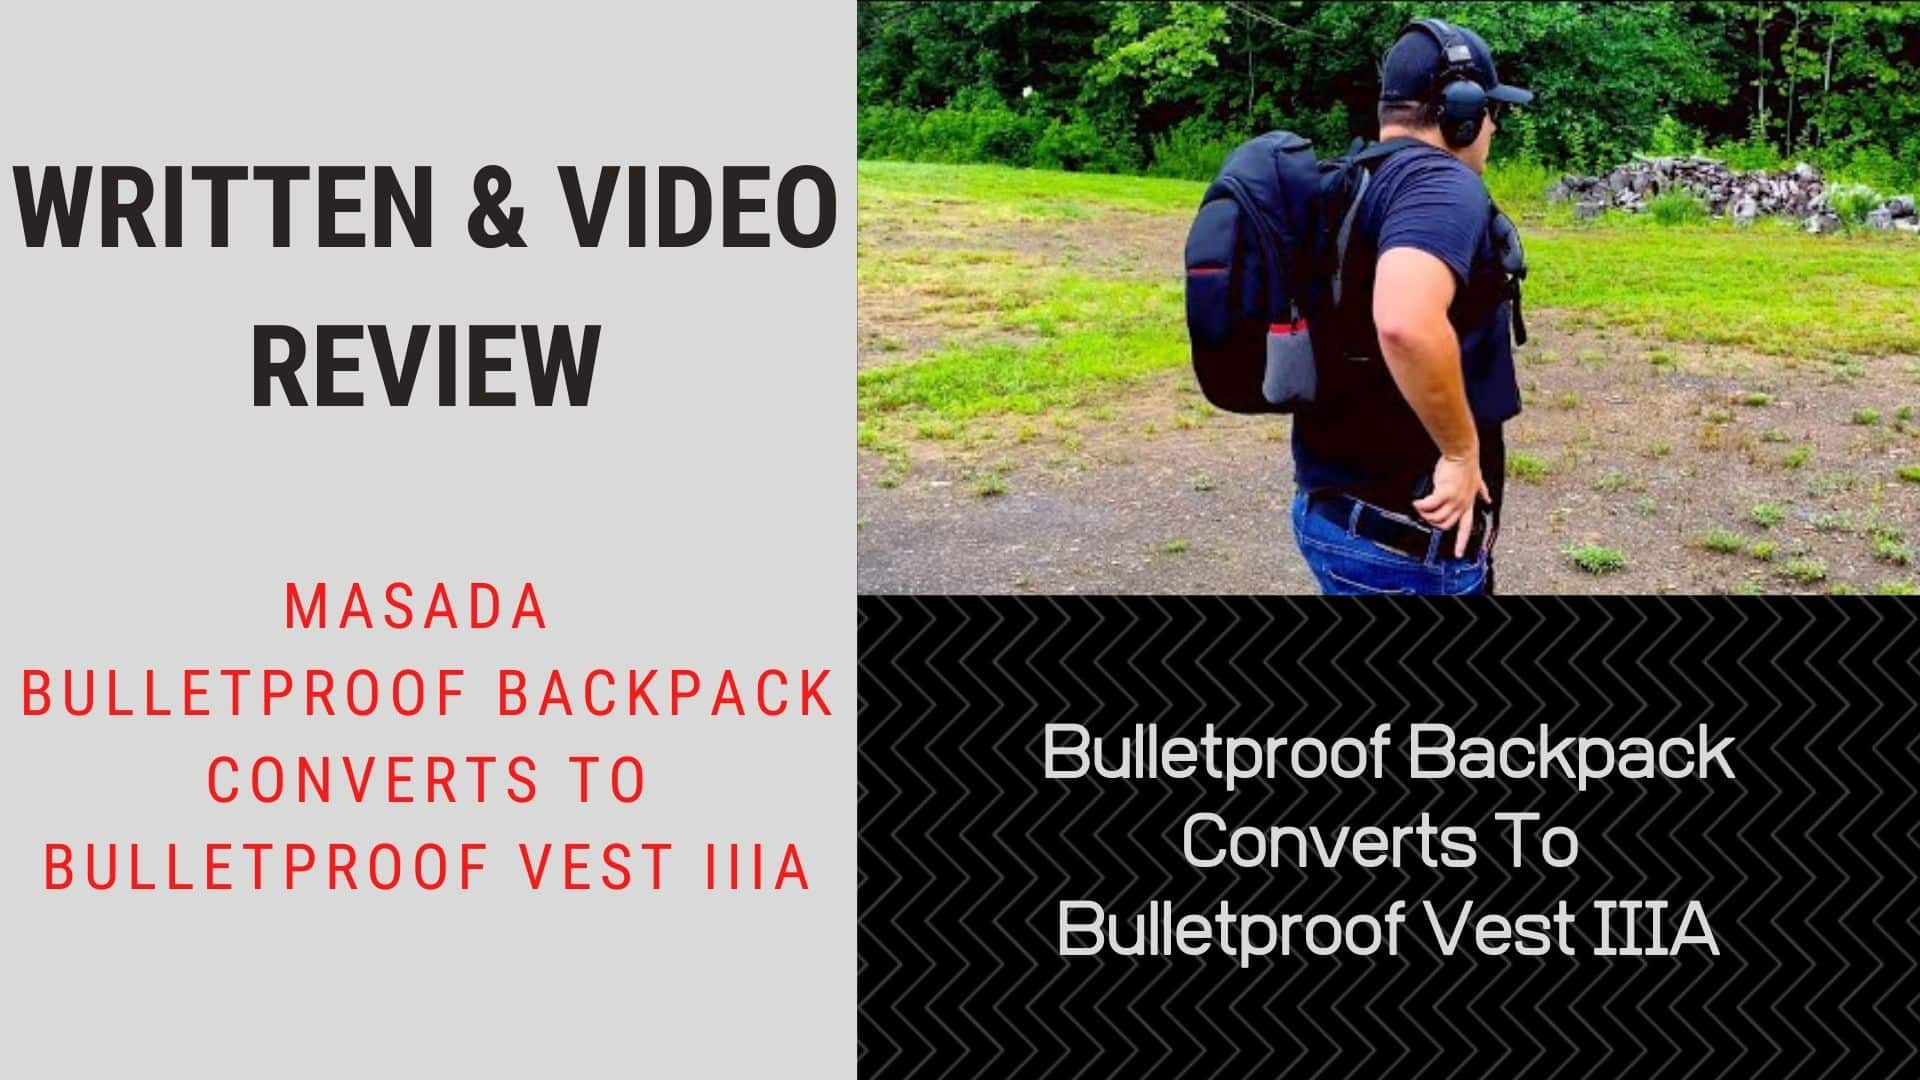 Written & Video Review MASADA Bulletproof Backpack Converts To Bulletproof Vest IIIA